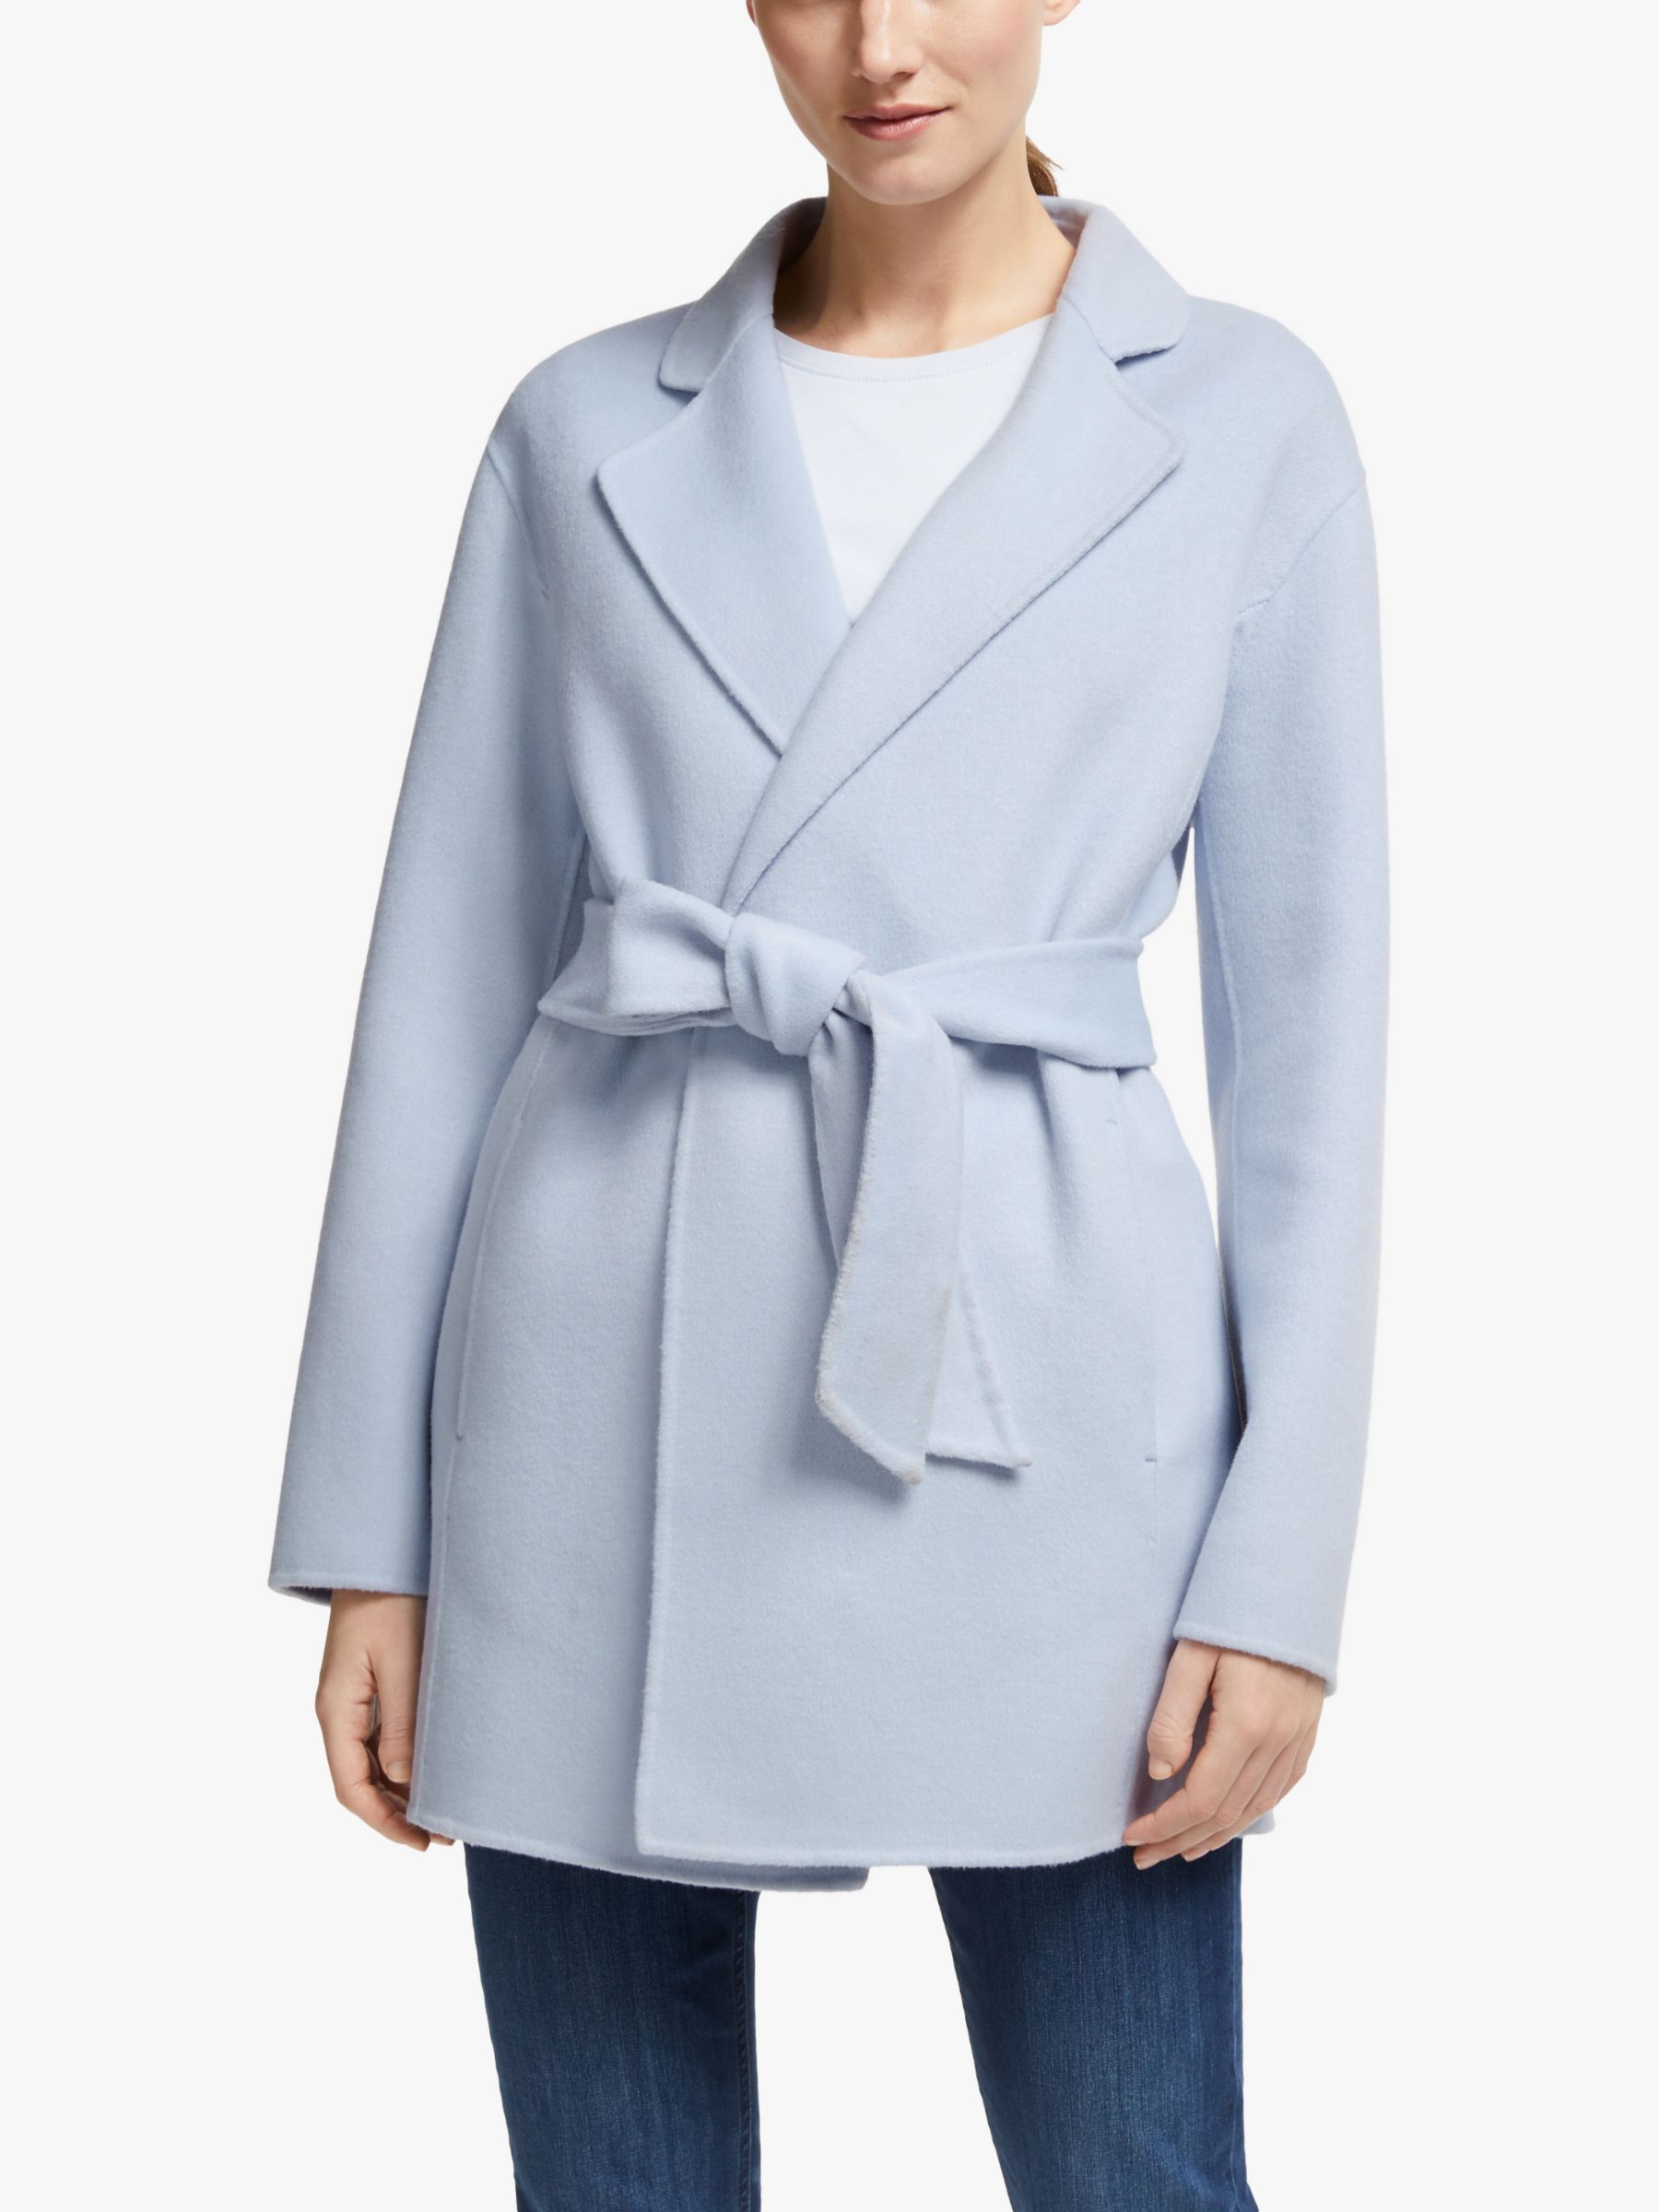 John Lewis & Partners John Lewis & Partners Double Faced Wrap Jacket